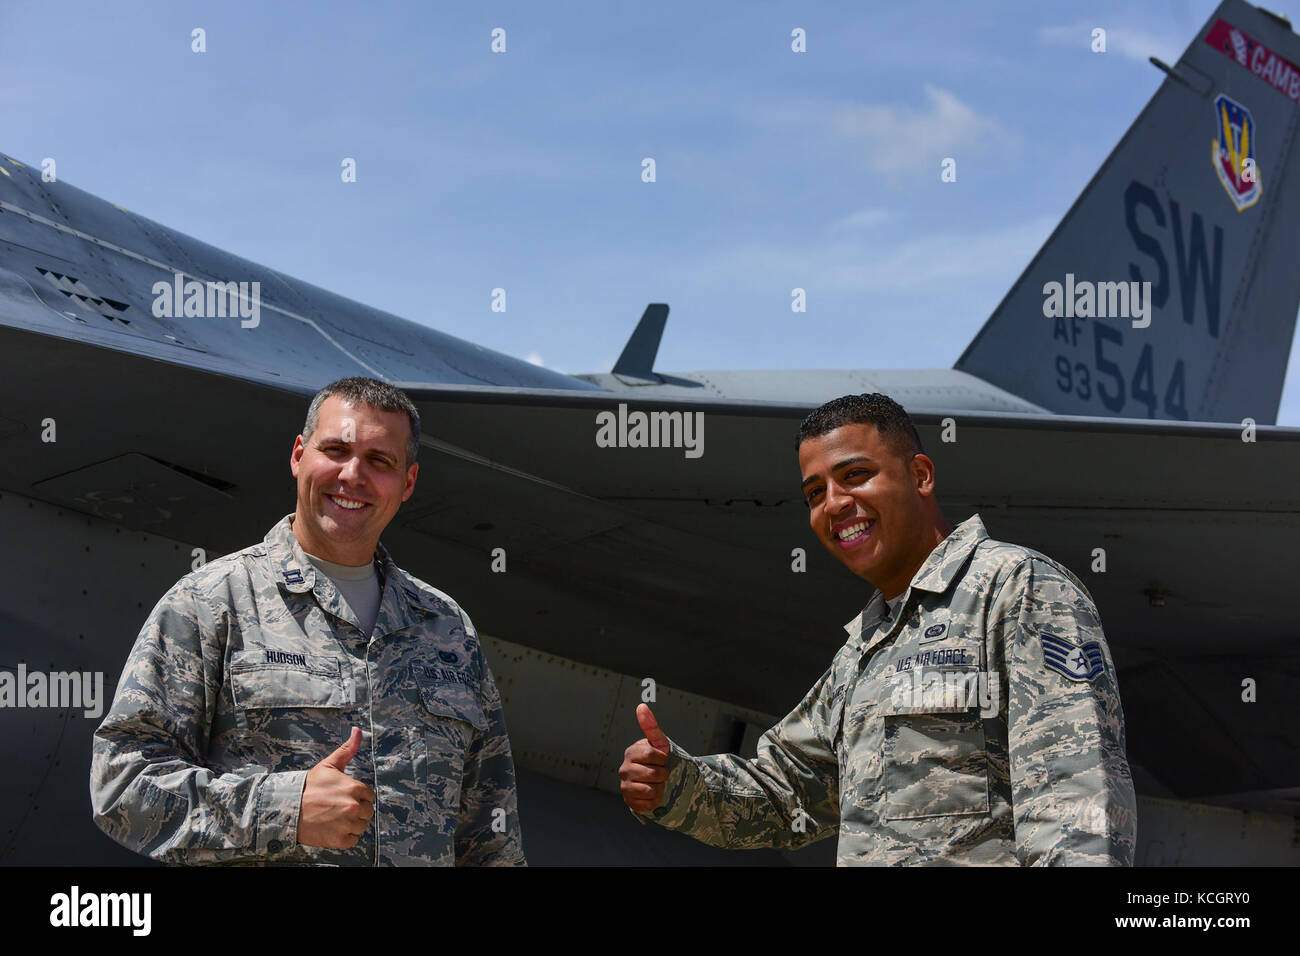 U.S. Air Force Capt. Stephen Hudson, the public affairs officer assigned to the South Carolina Air National Guard's - Stock Image